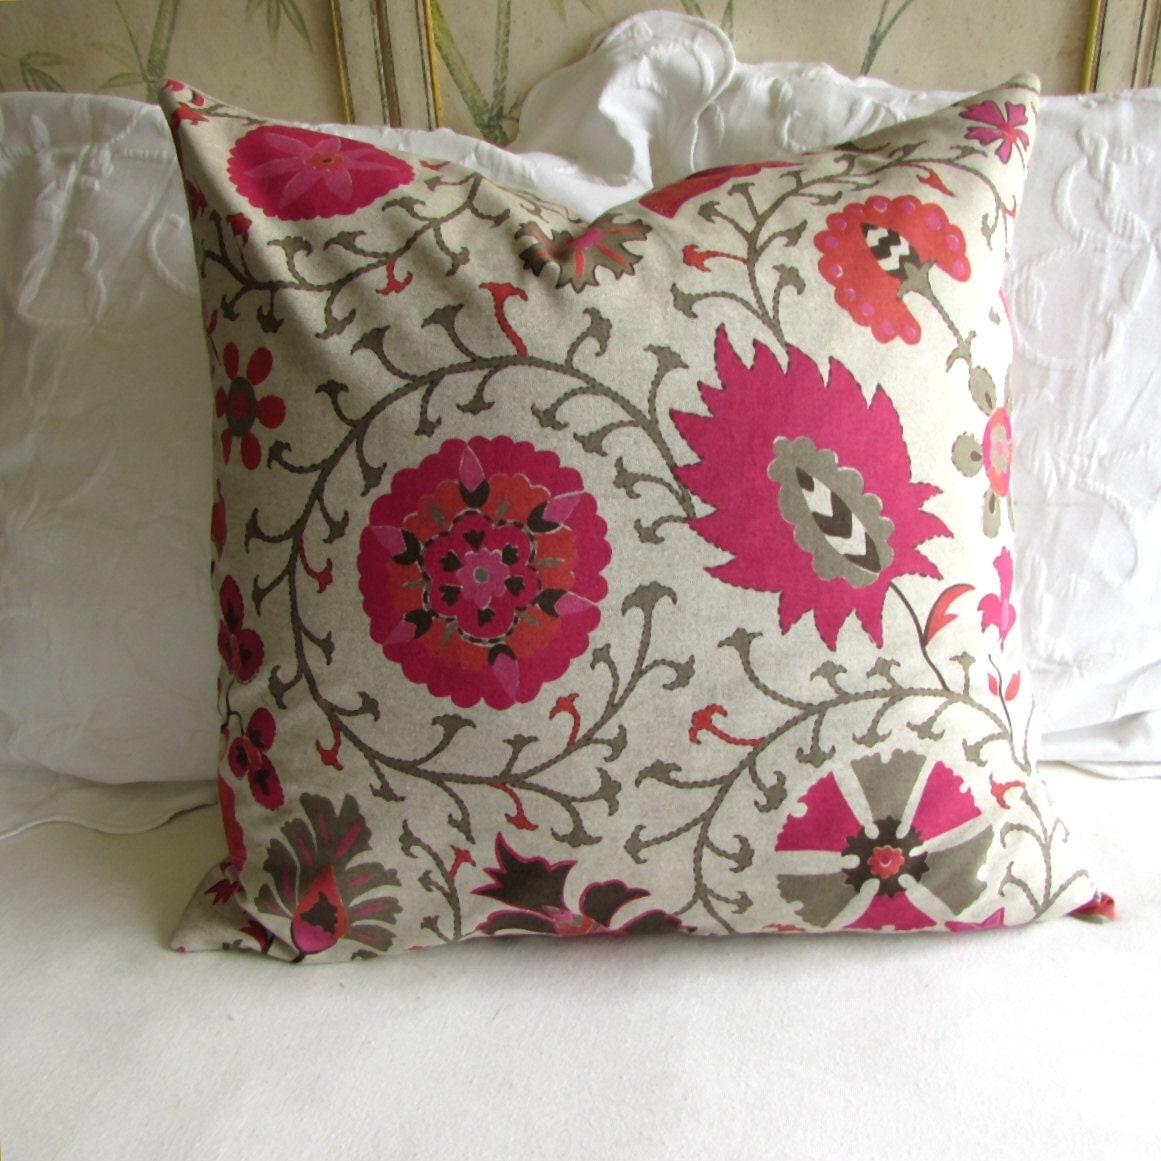 Large Flower Throw Pillow : CALYPSO HIBISCUS large floral decorative euro pillow cover